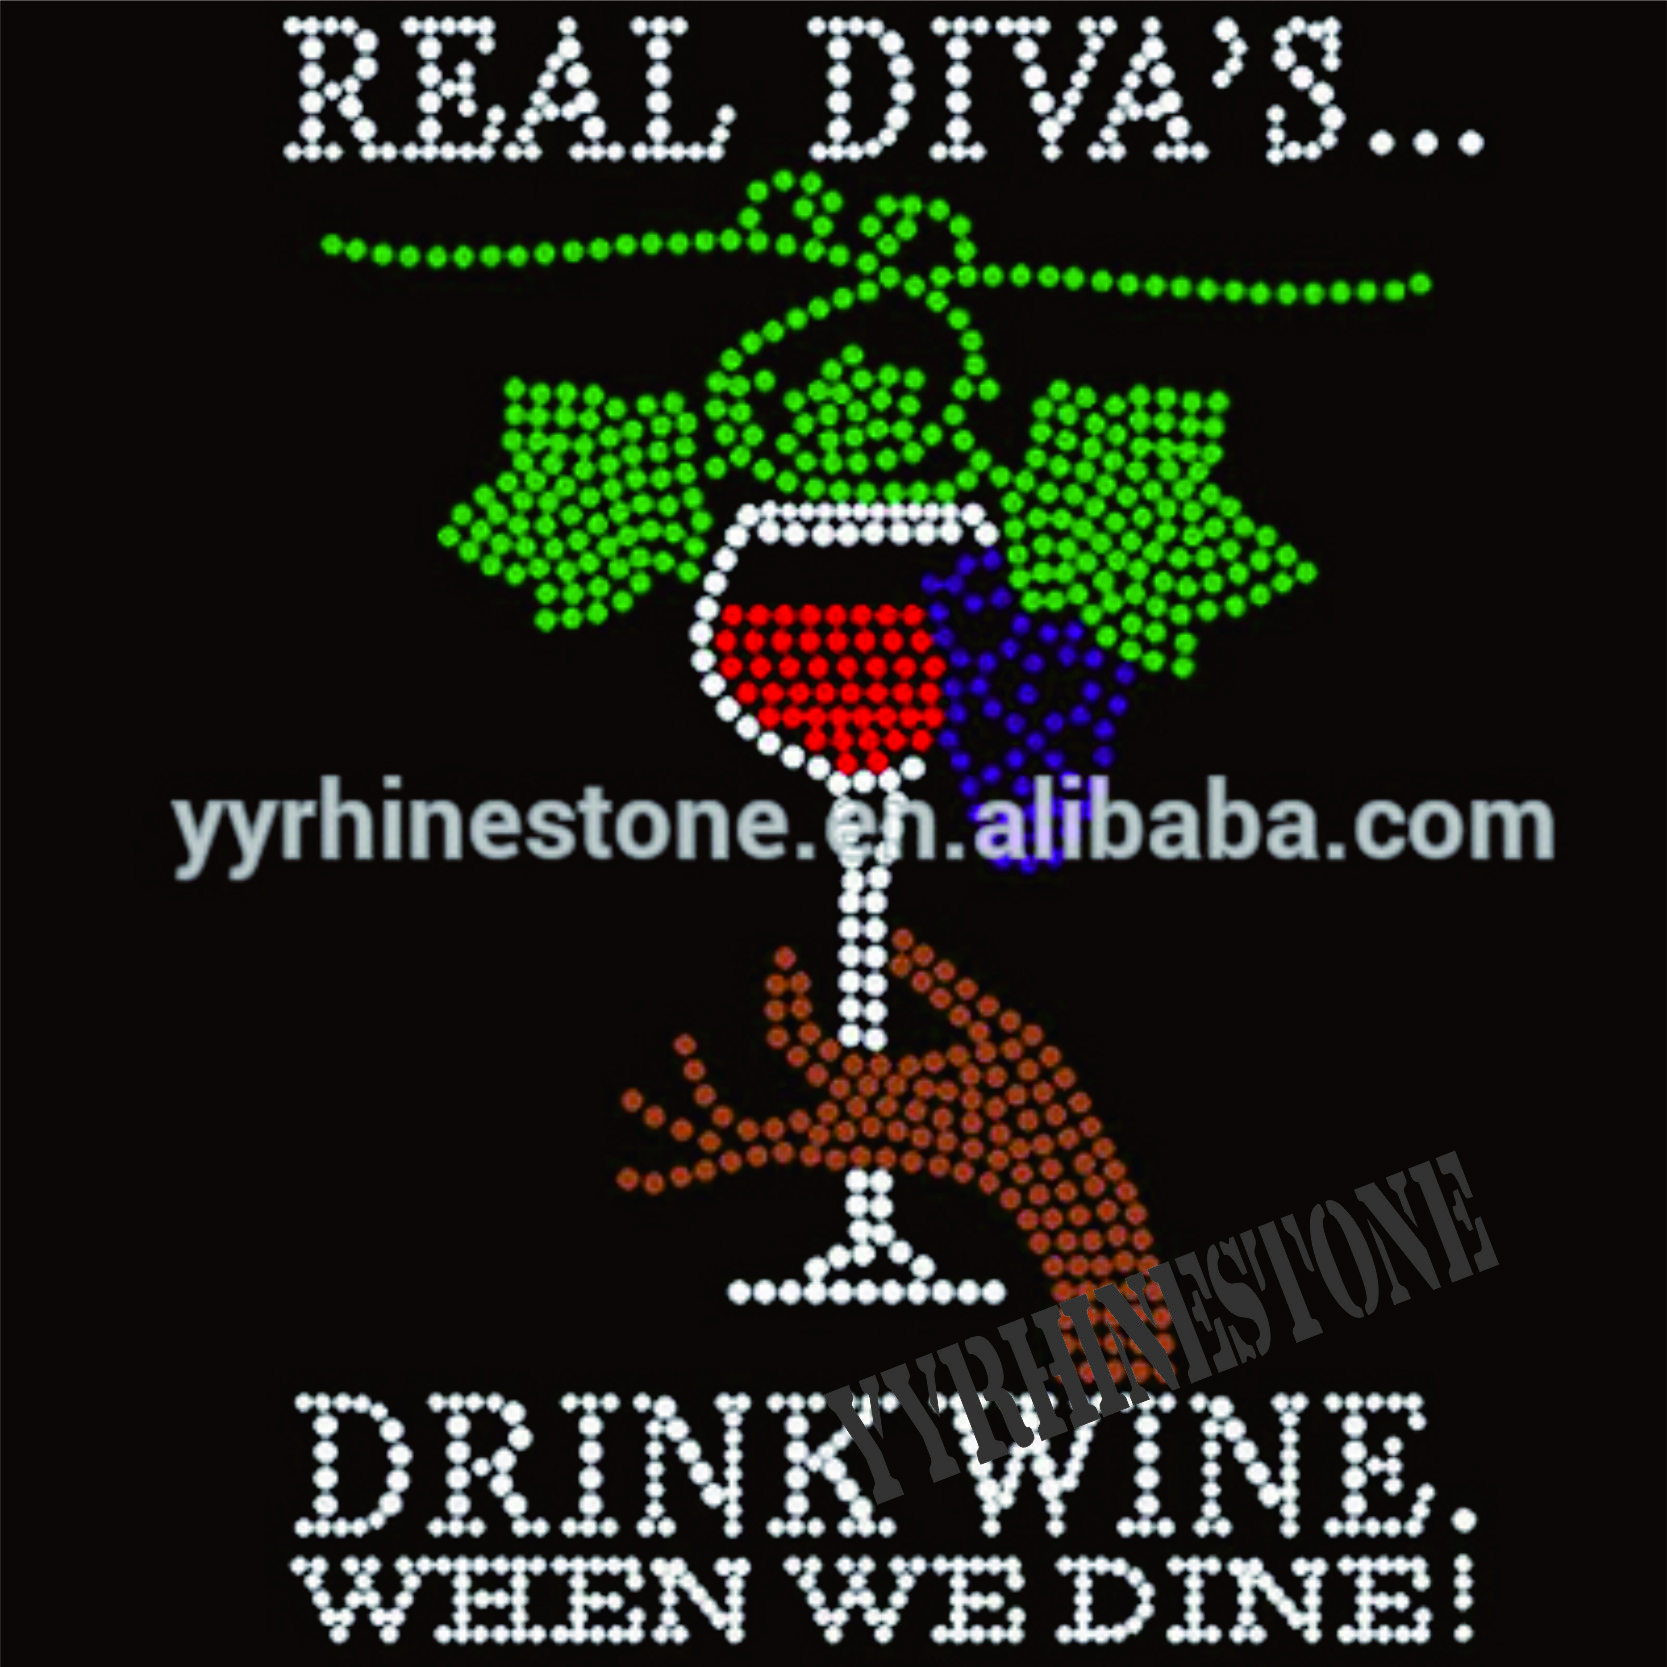 drink wine when we dine rhinestone transfers for t-shirts